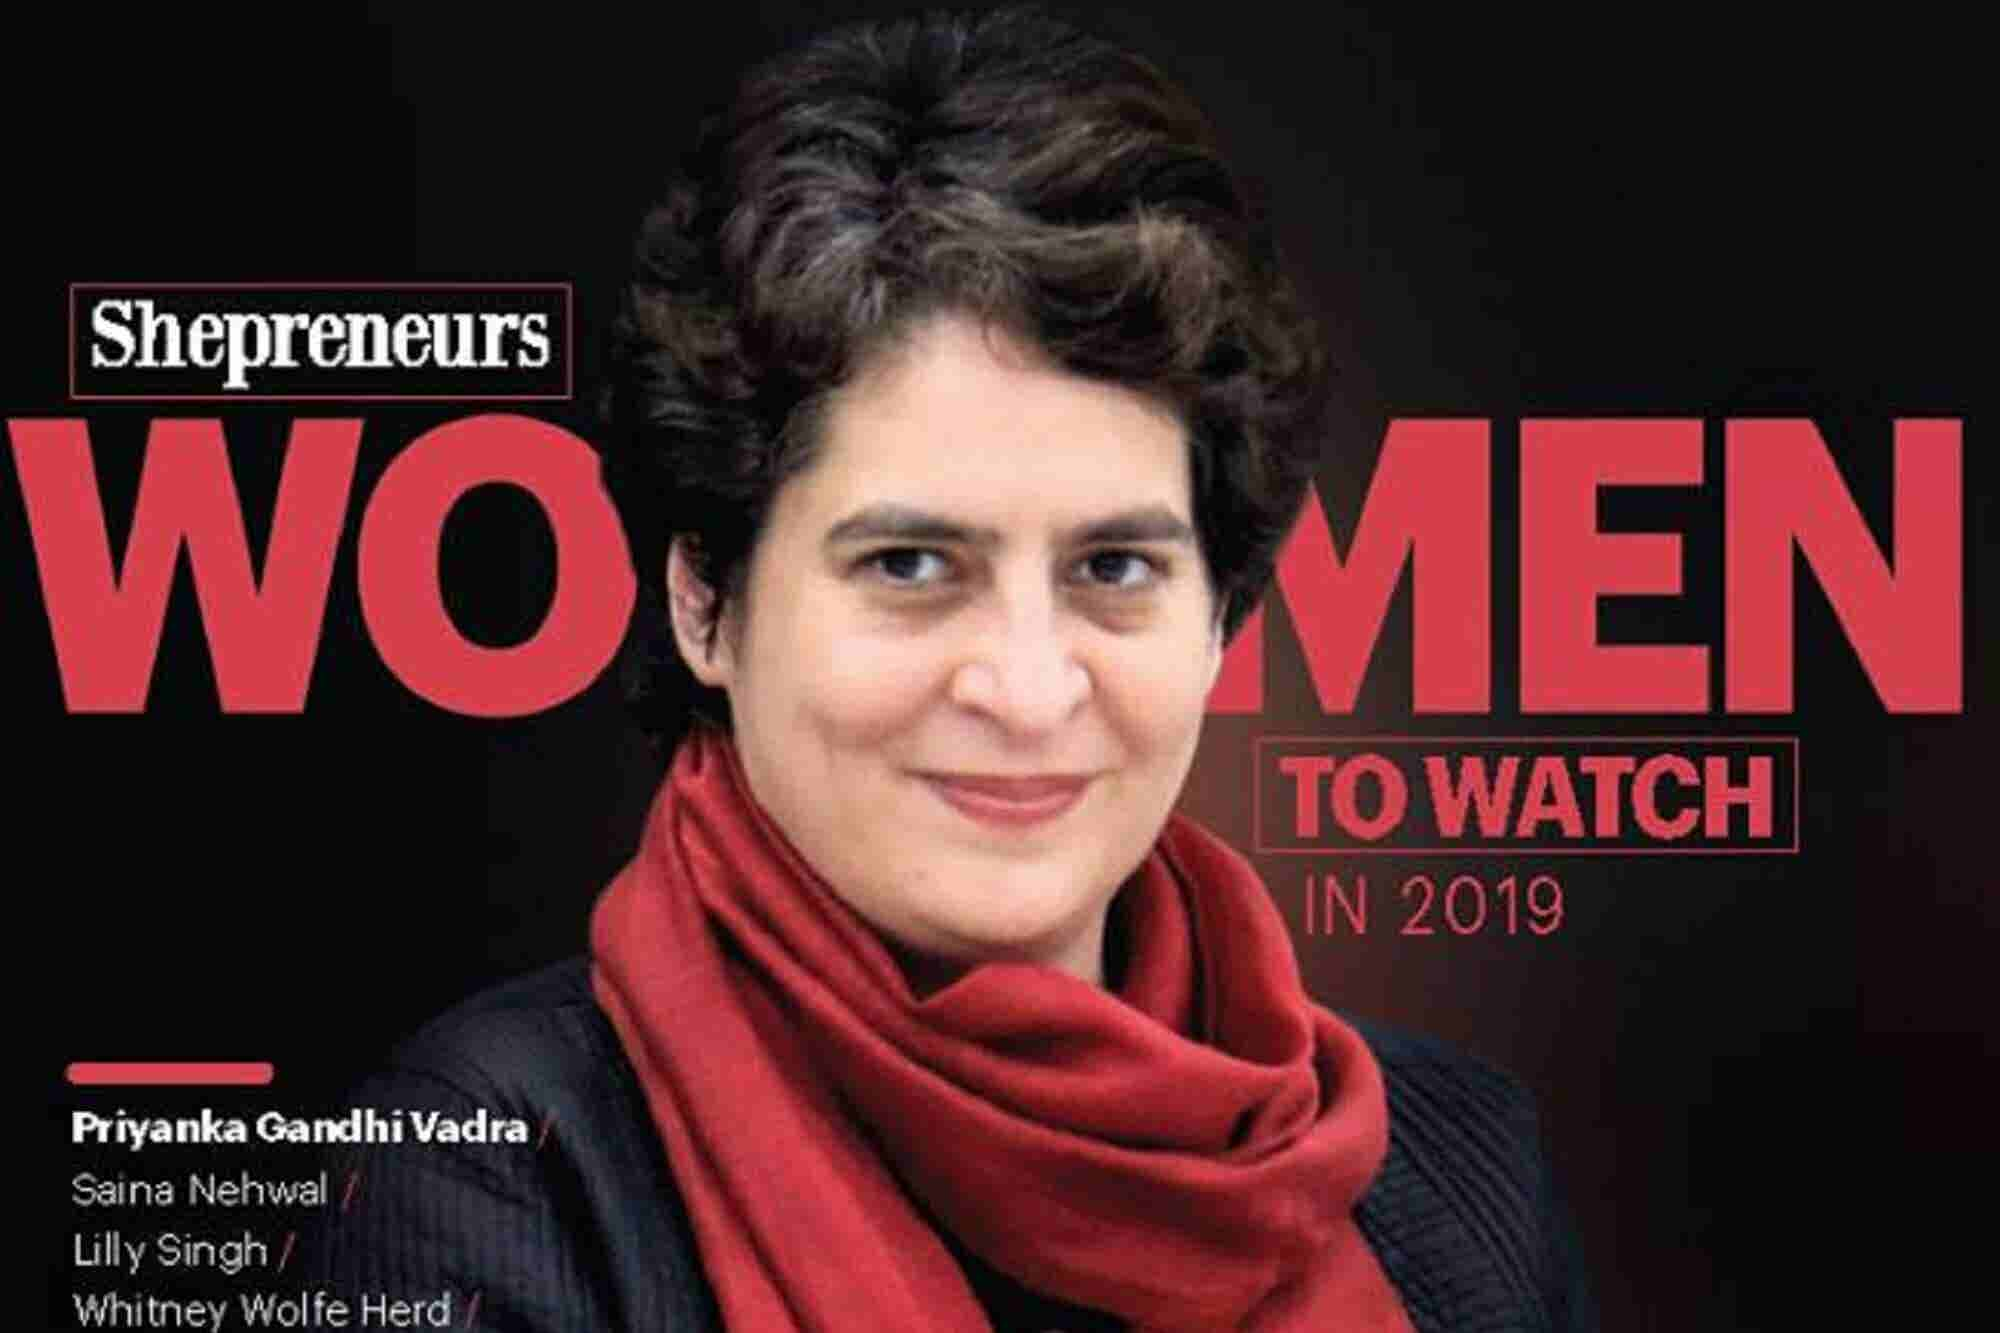 Priyanka Gandhi's Staunch Political Persona Got her on the Cover of Entrepreneur India Magazine